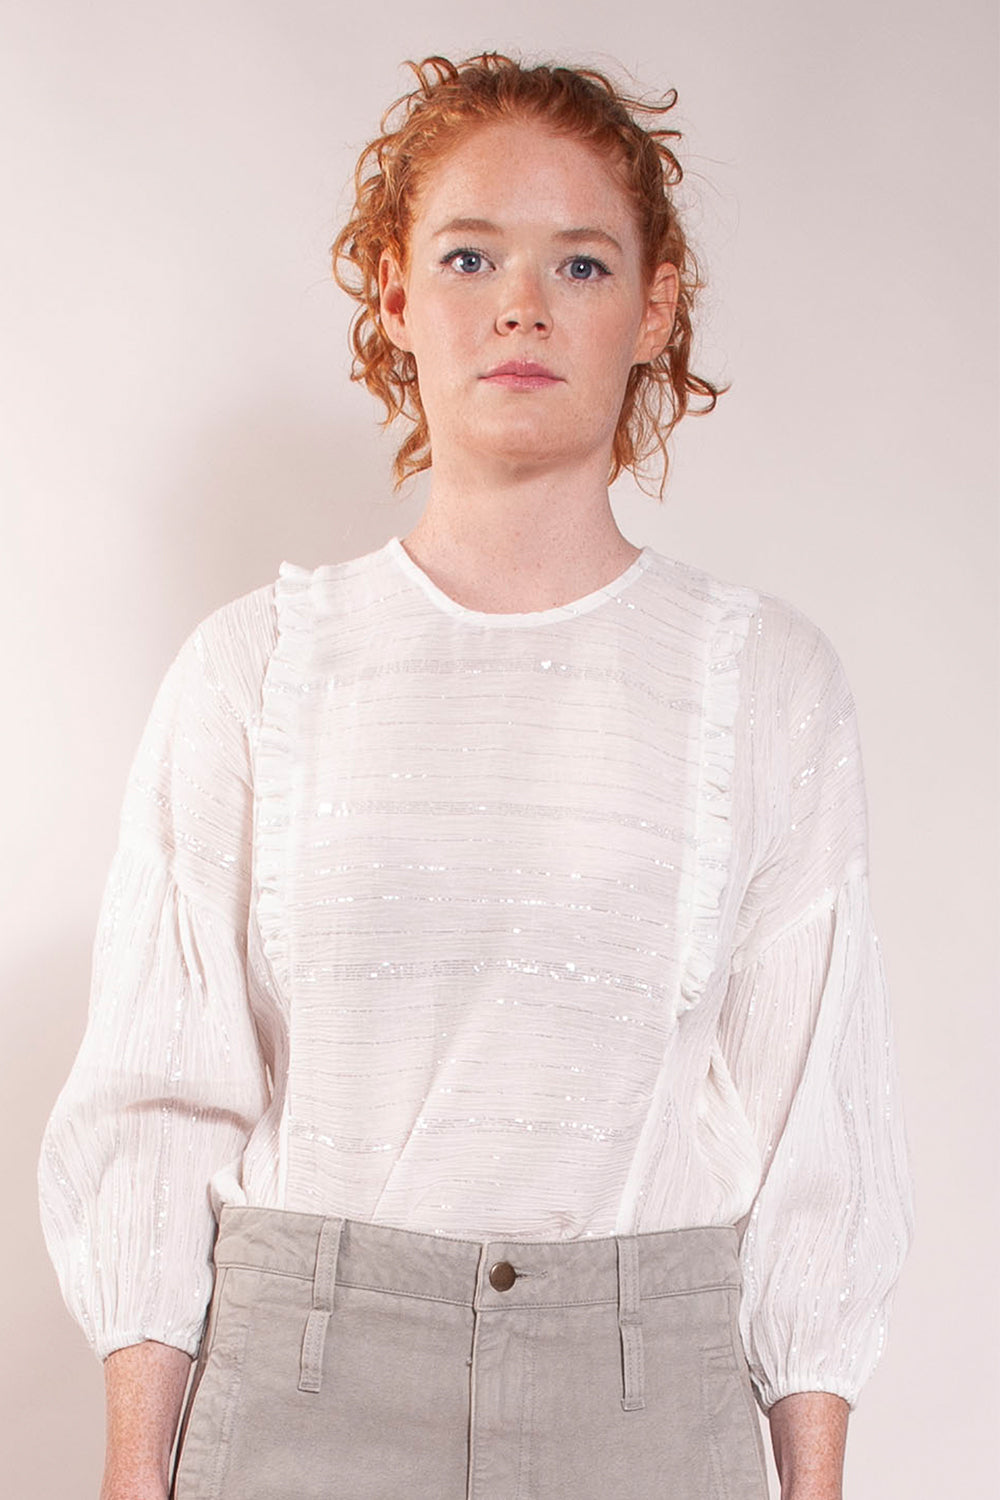 Drop shoulder with gather puff sleeve and elastic cuff. Ruffle detail on front. One button closure in back. Shaped hem. 100% cotton. Natural gauze with silver lurex stripe.